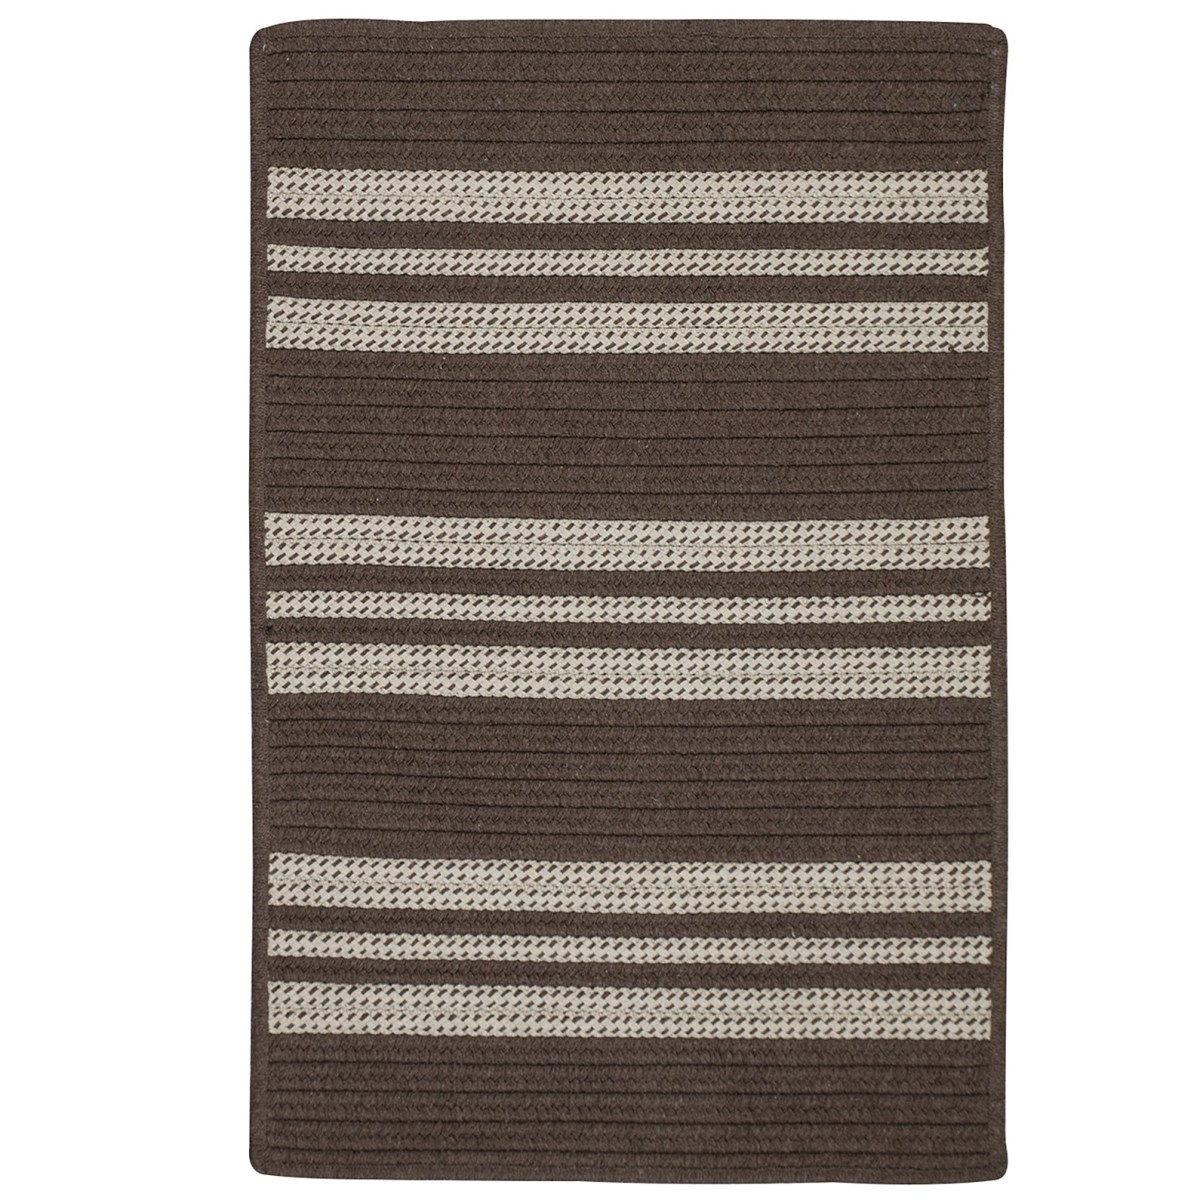 Sunbrella Southport Stripe Mink Outdoor Braided Rectangular Rugs